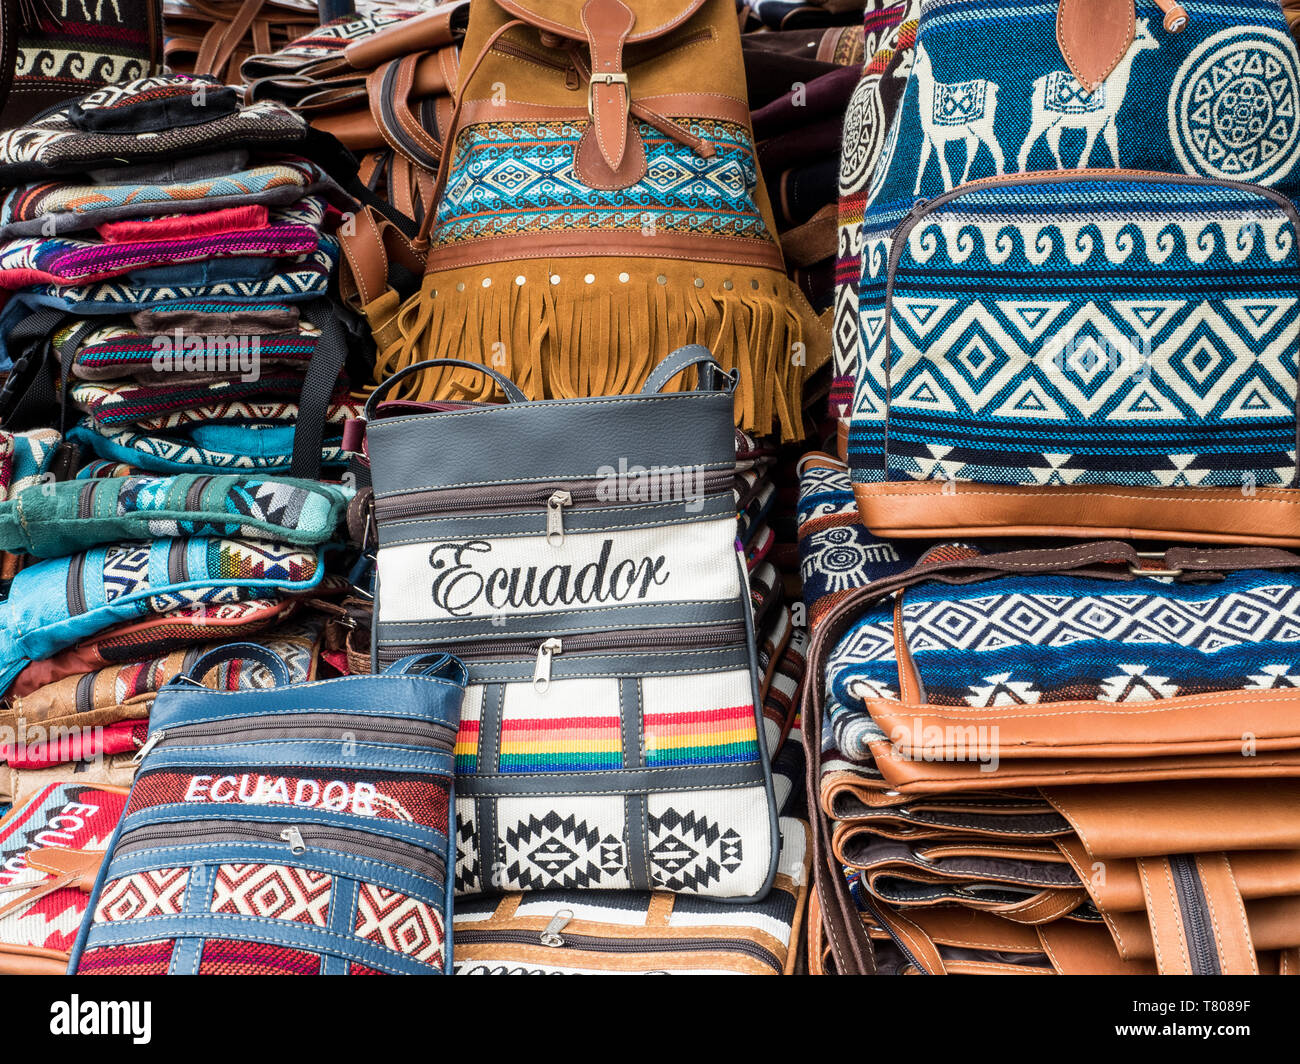 Tourist goods for sale, craft market, Plaza de los Ponchos, Otavalo, Ecuador, South America - Stock Image